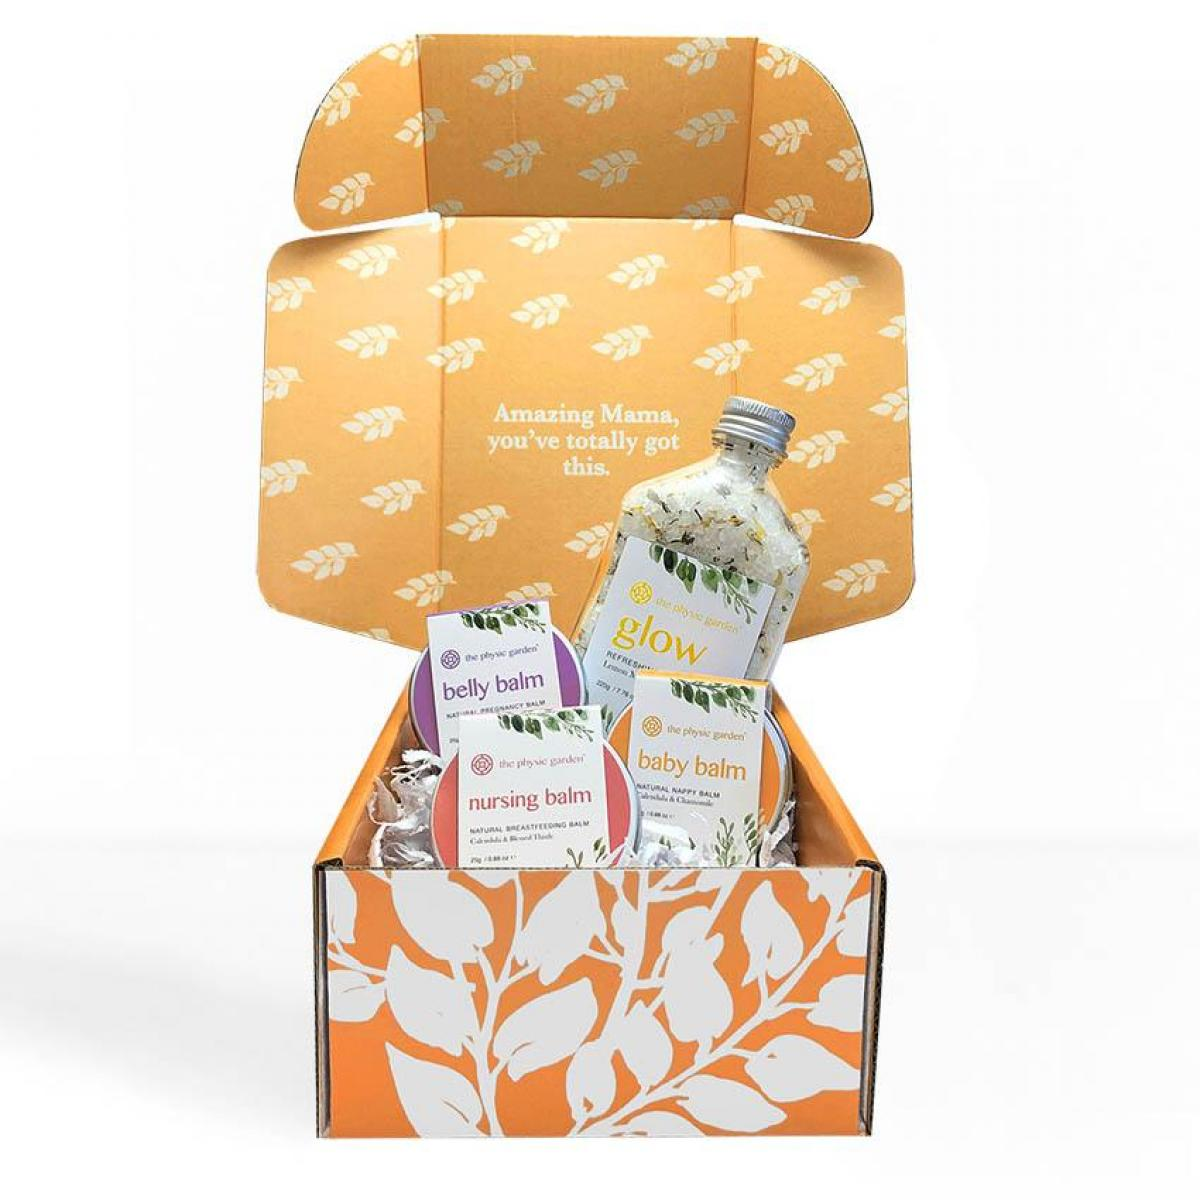 Mama & Bub Gift Set by The Physic Garden - Gift Pack - Throw Some Seeds - Australian gardening gifts and eco products online!